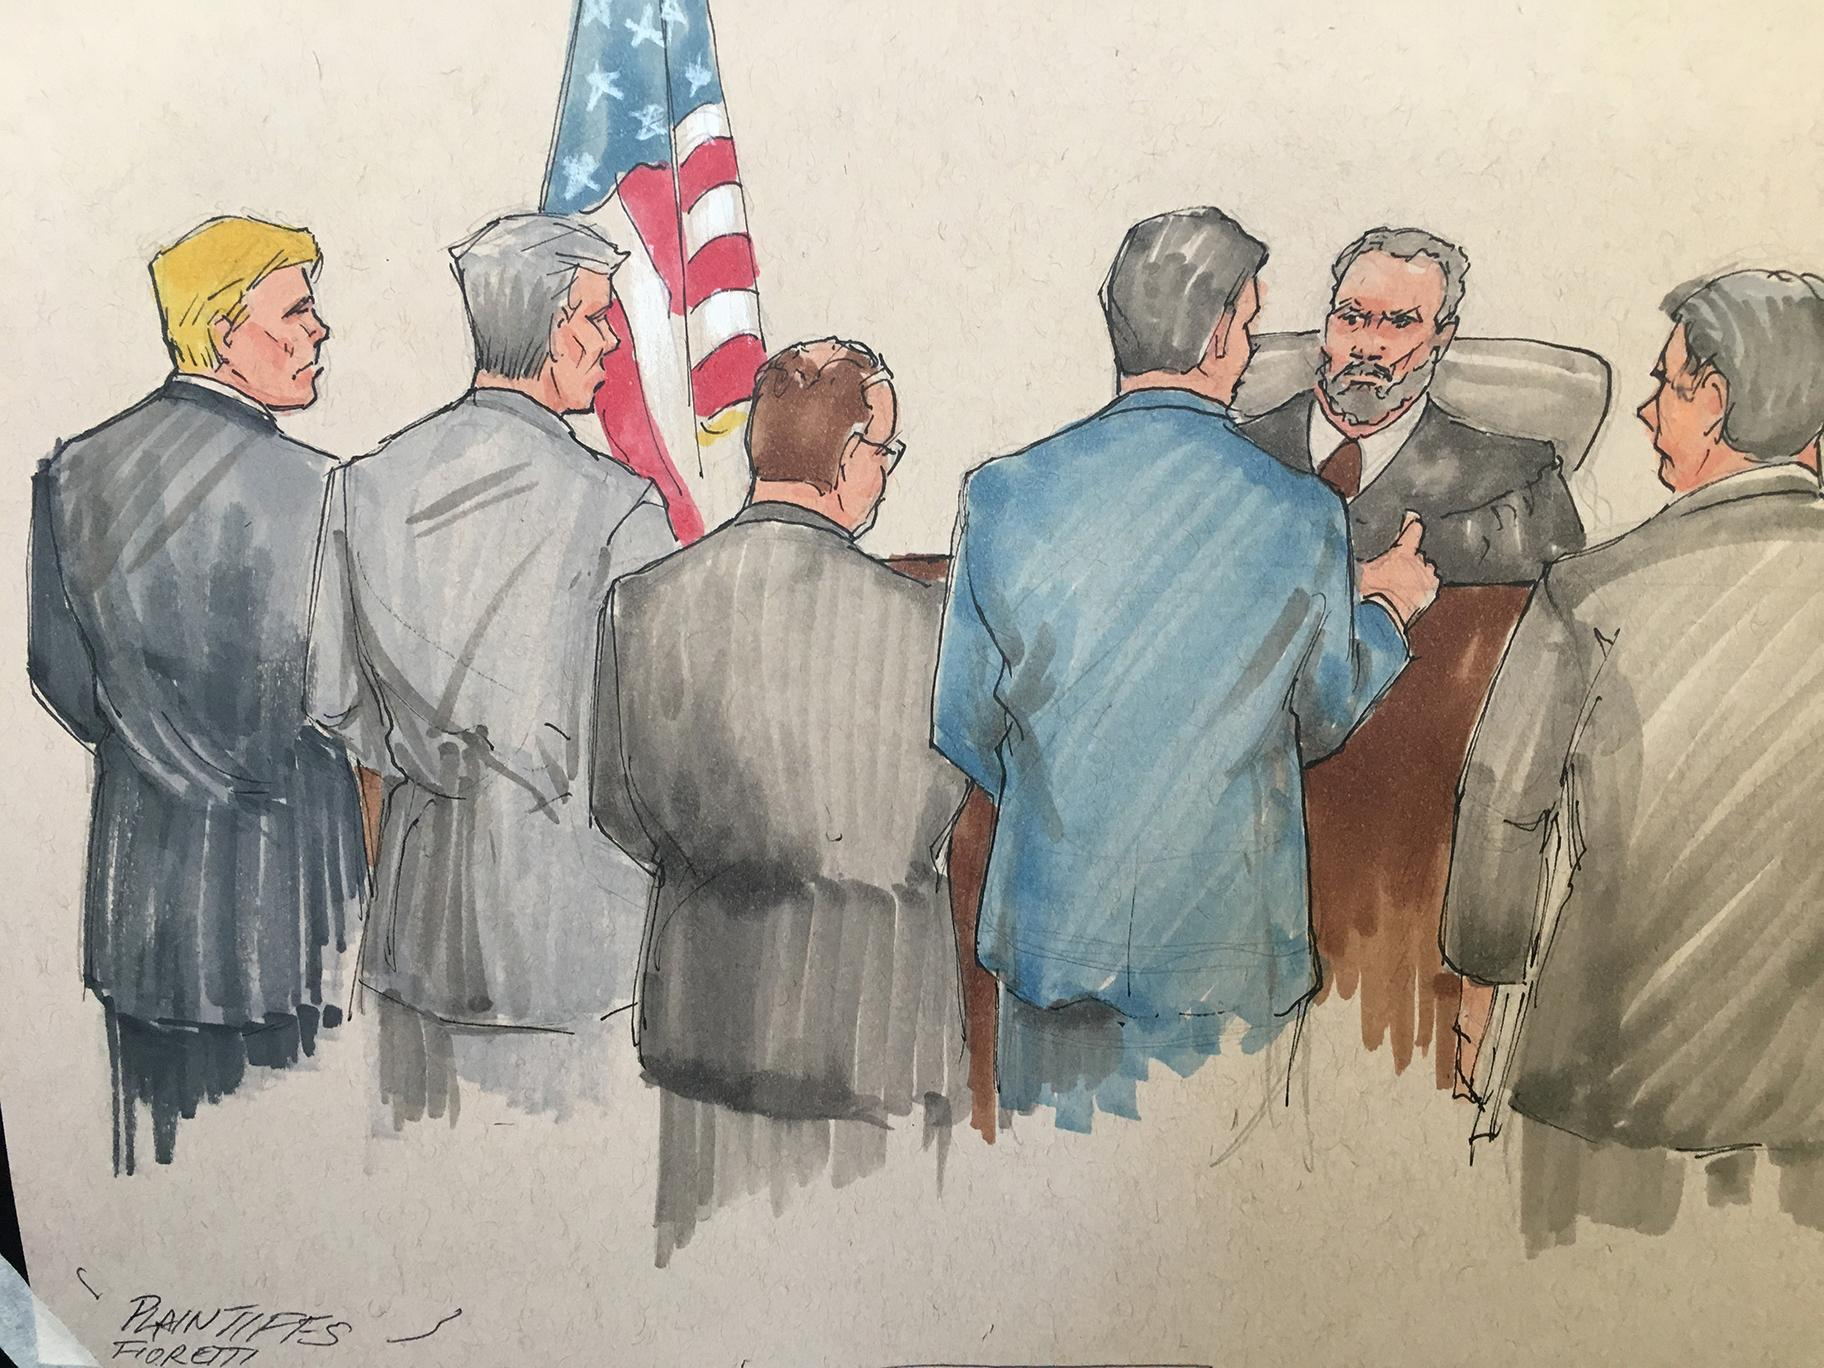 Plaintiffs appear before U.S. District Judge John Robert Blakey on Tuesday, June 11, 2019 to discuss a suit aiming to halt construction of the Obama Presidential Center in Jackson Park. (Courtroom sketch by Tom Gianni)